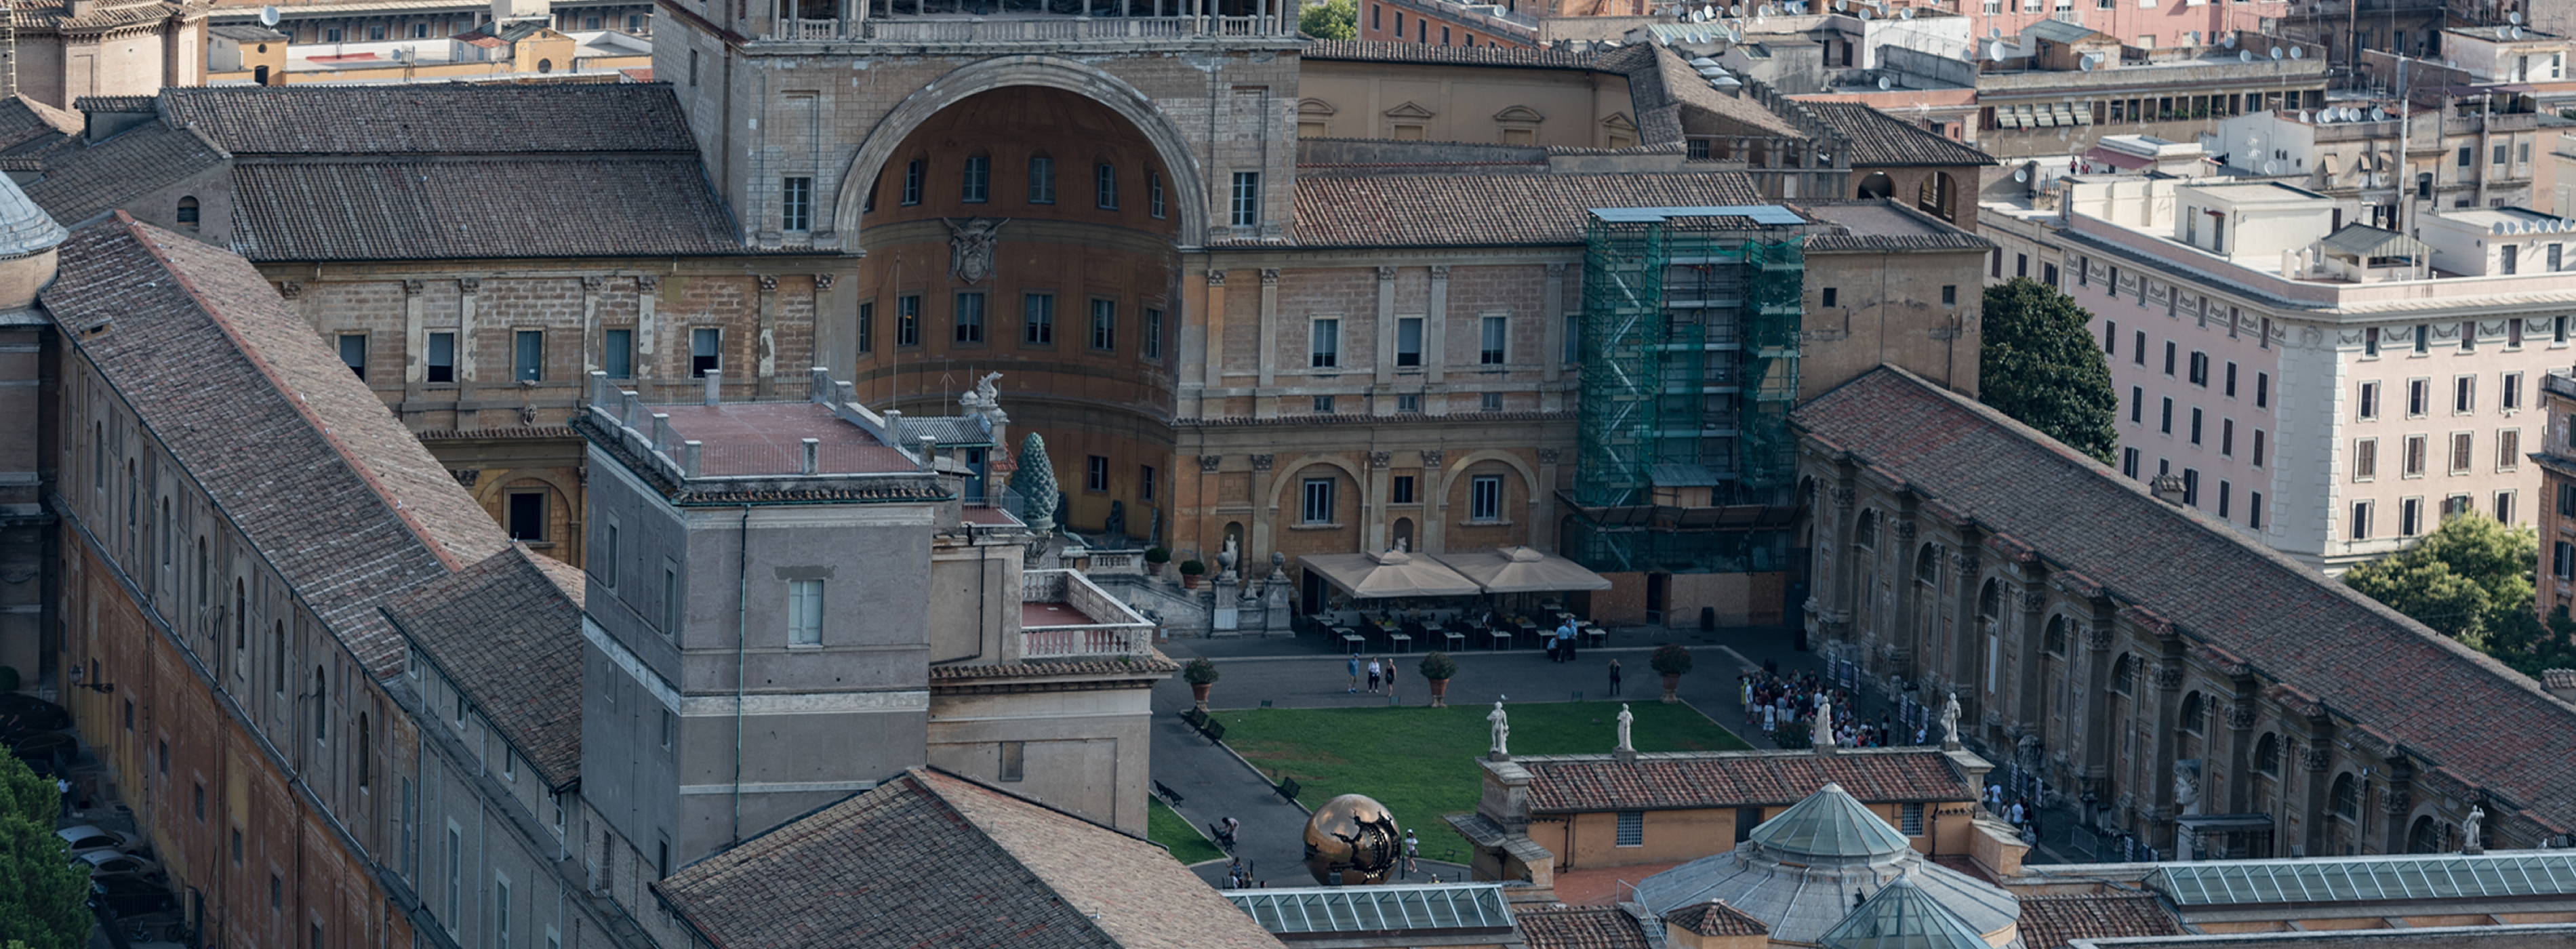 Looking down at the Courtyard of the Vatican Museum in Rome